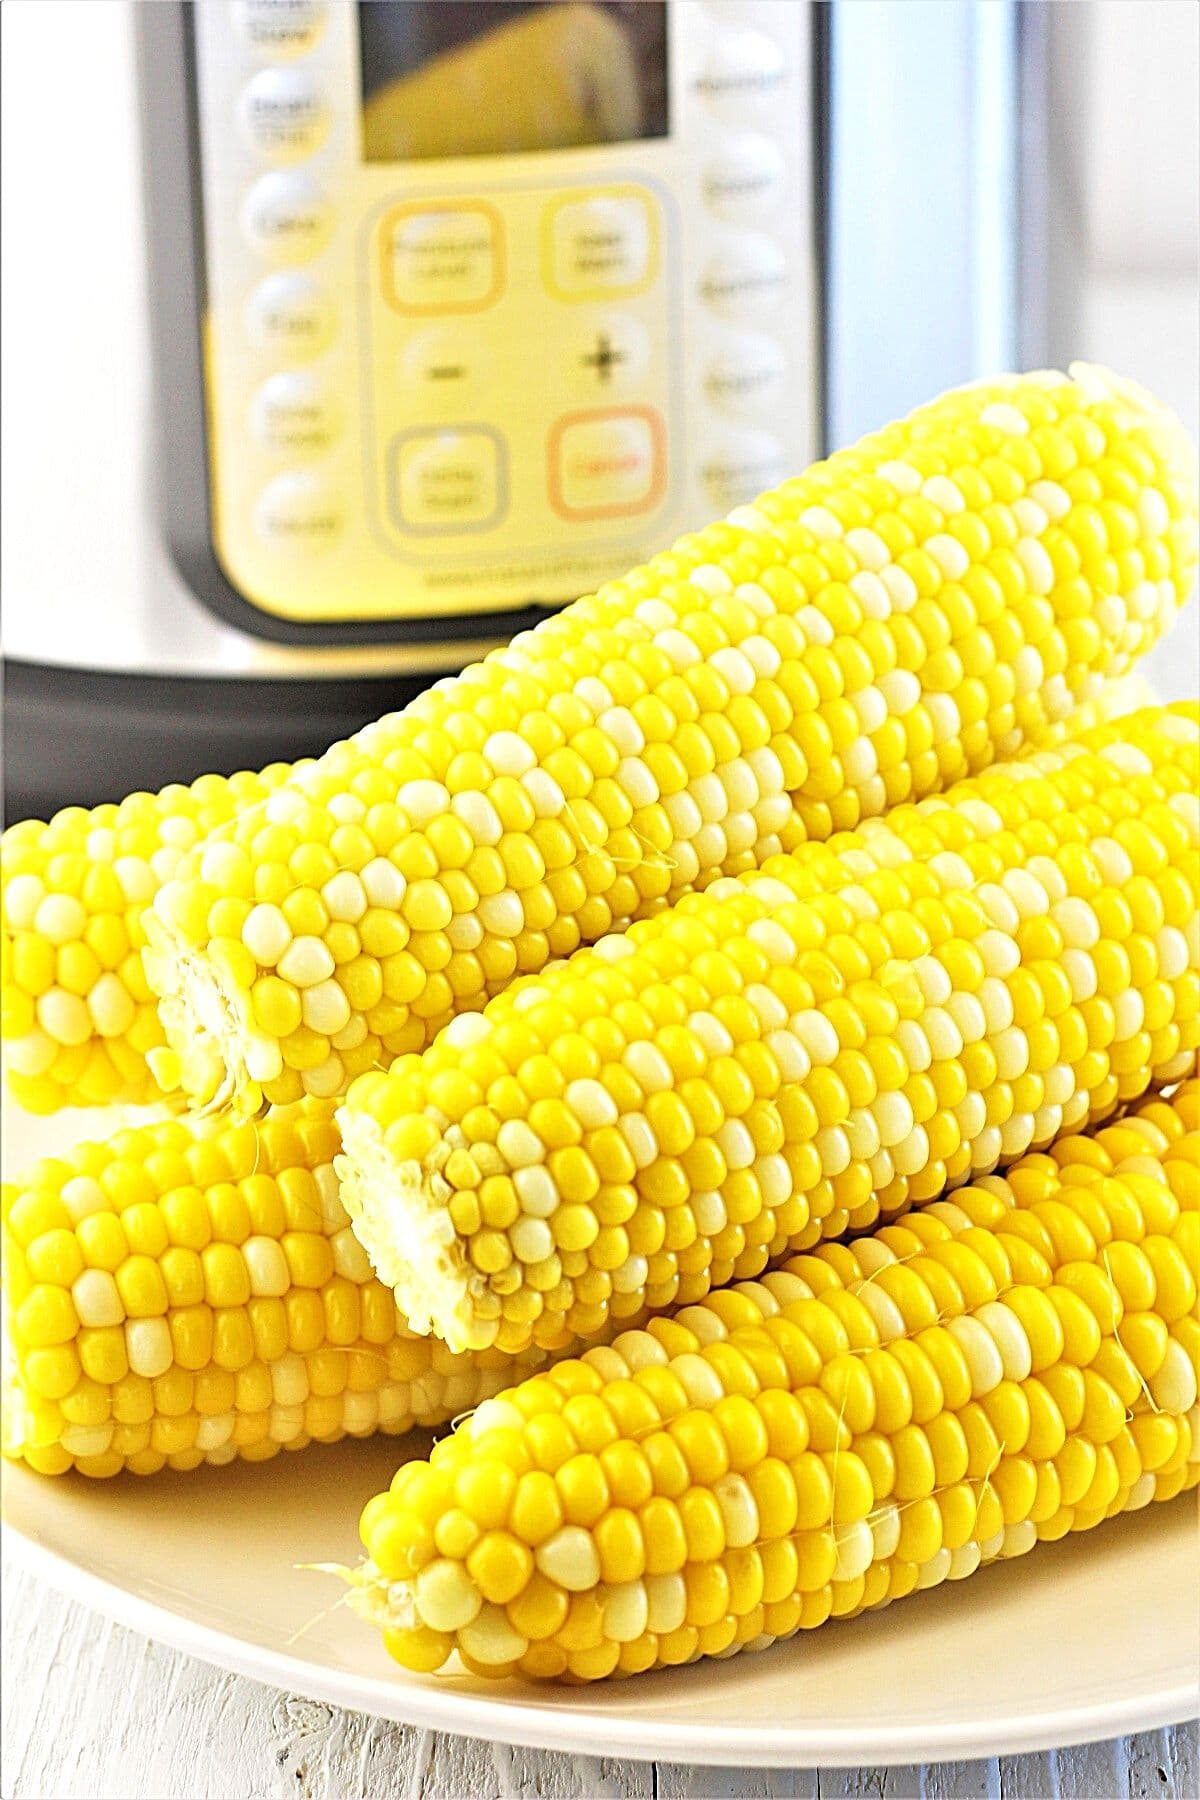 6 ears of corn on the cob on a white plate in front of an instant pot